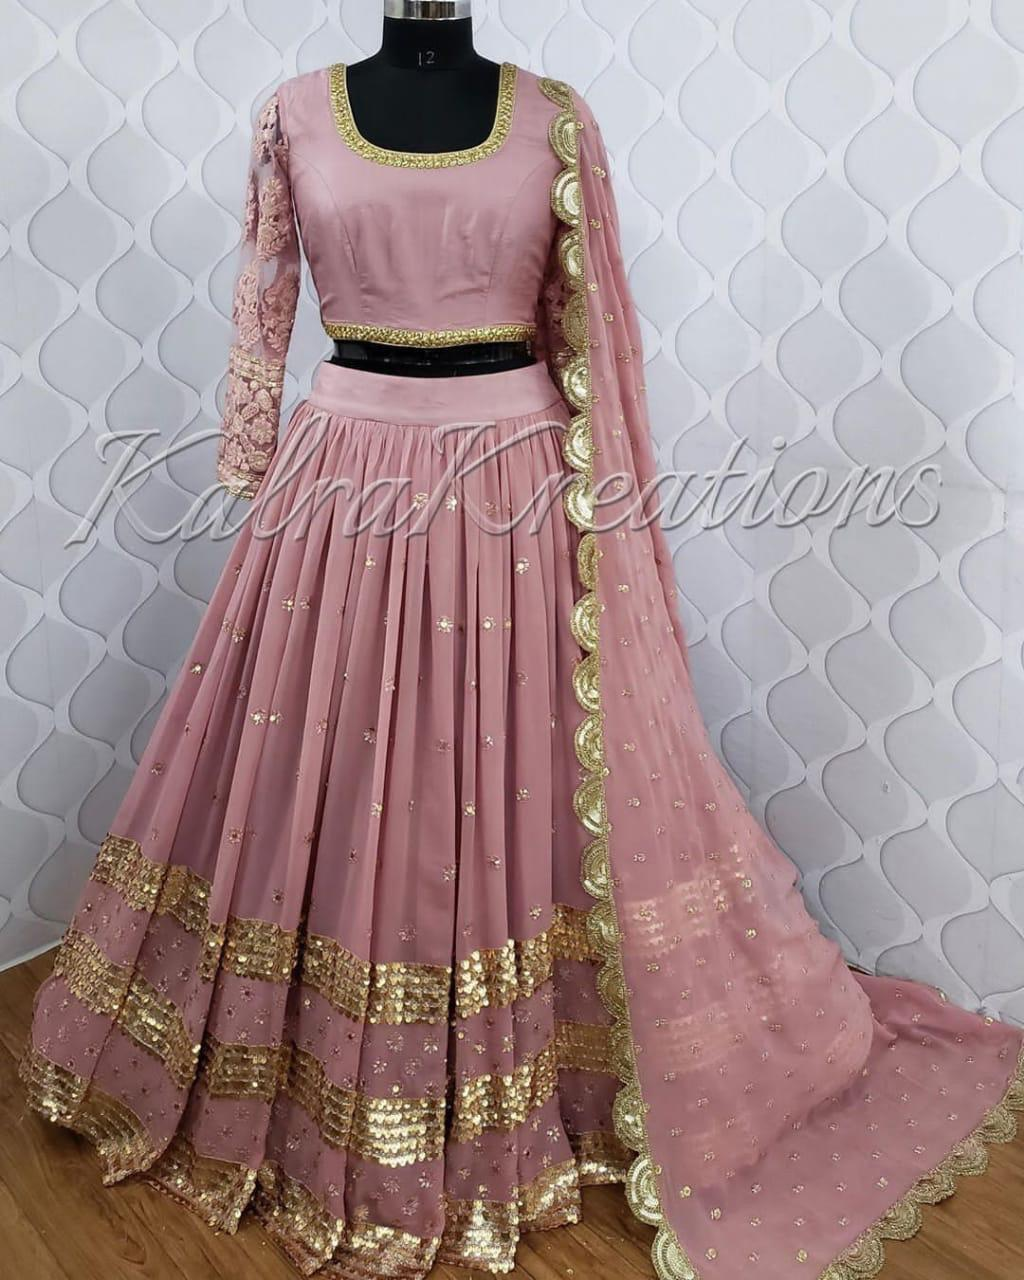 Misty Rose Georgette Party Lehenga Choli Online Shopping